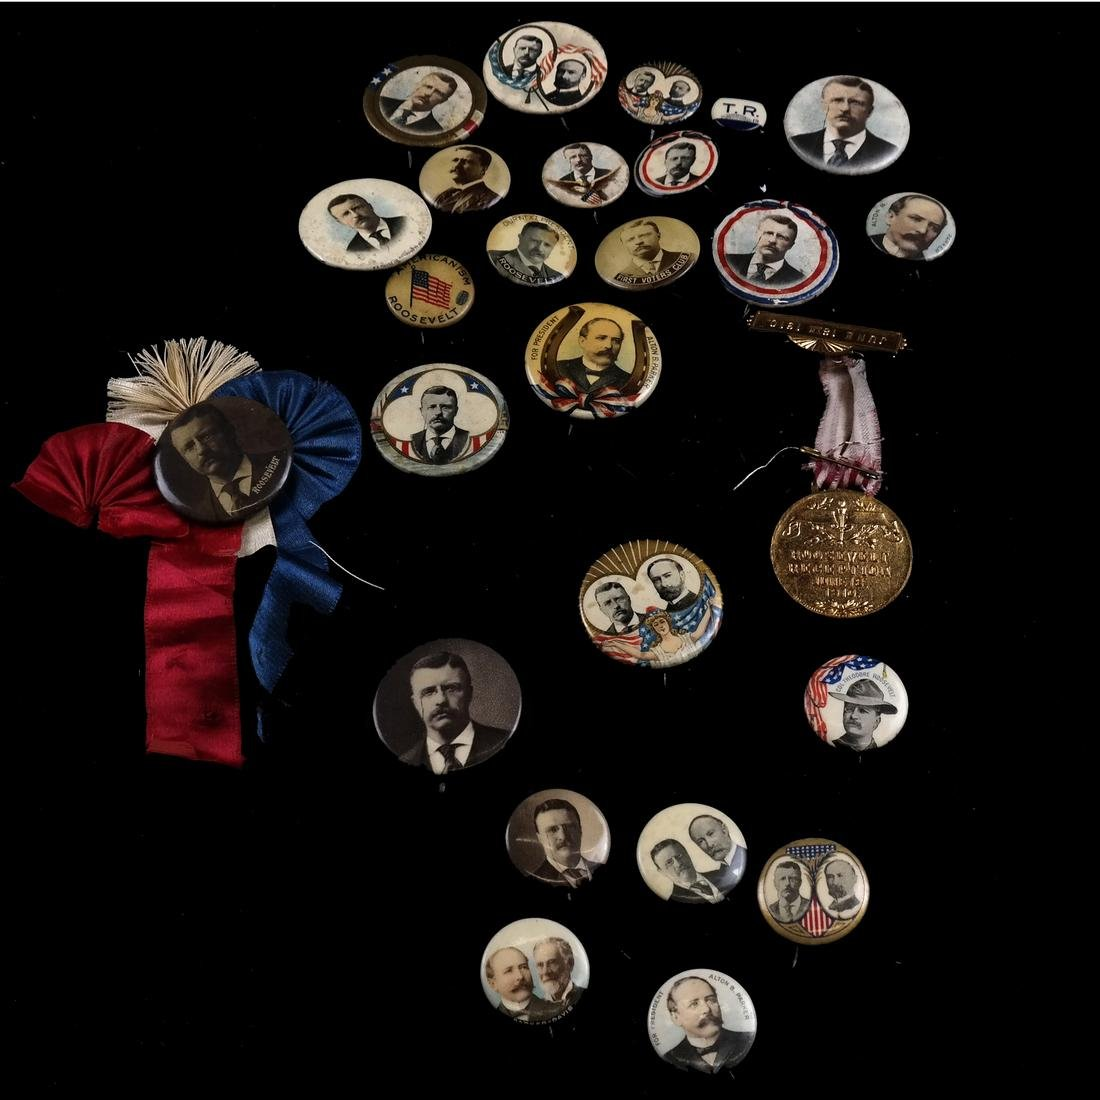 GROUP OF T. ROOSEVELT & A. PARKER 1904 CAMPAIGN BUTTONS